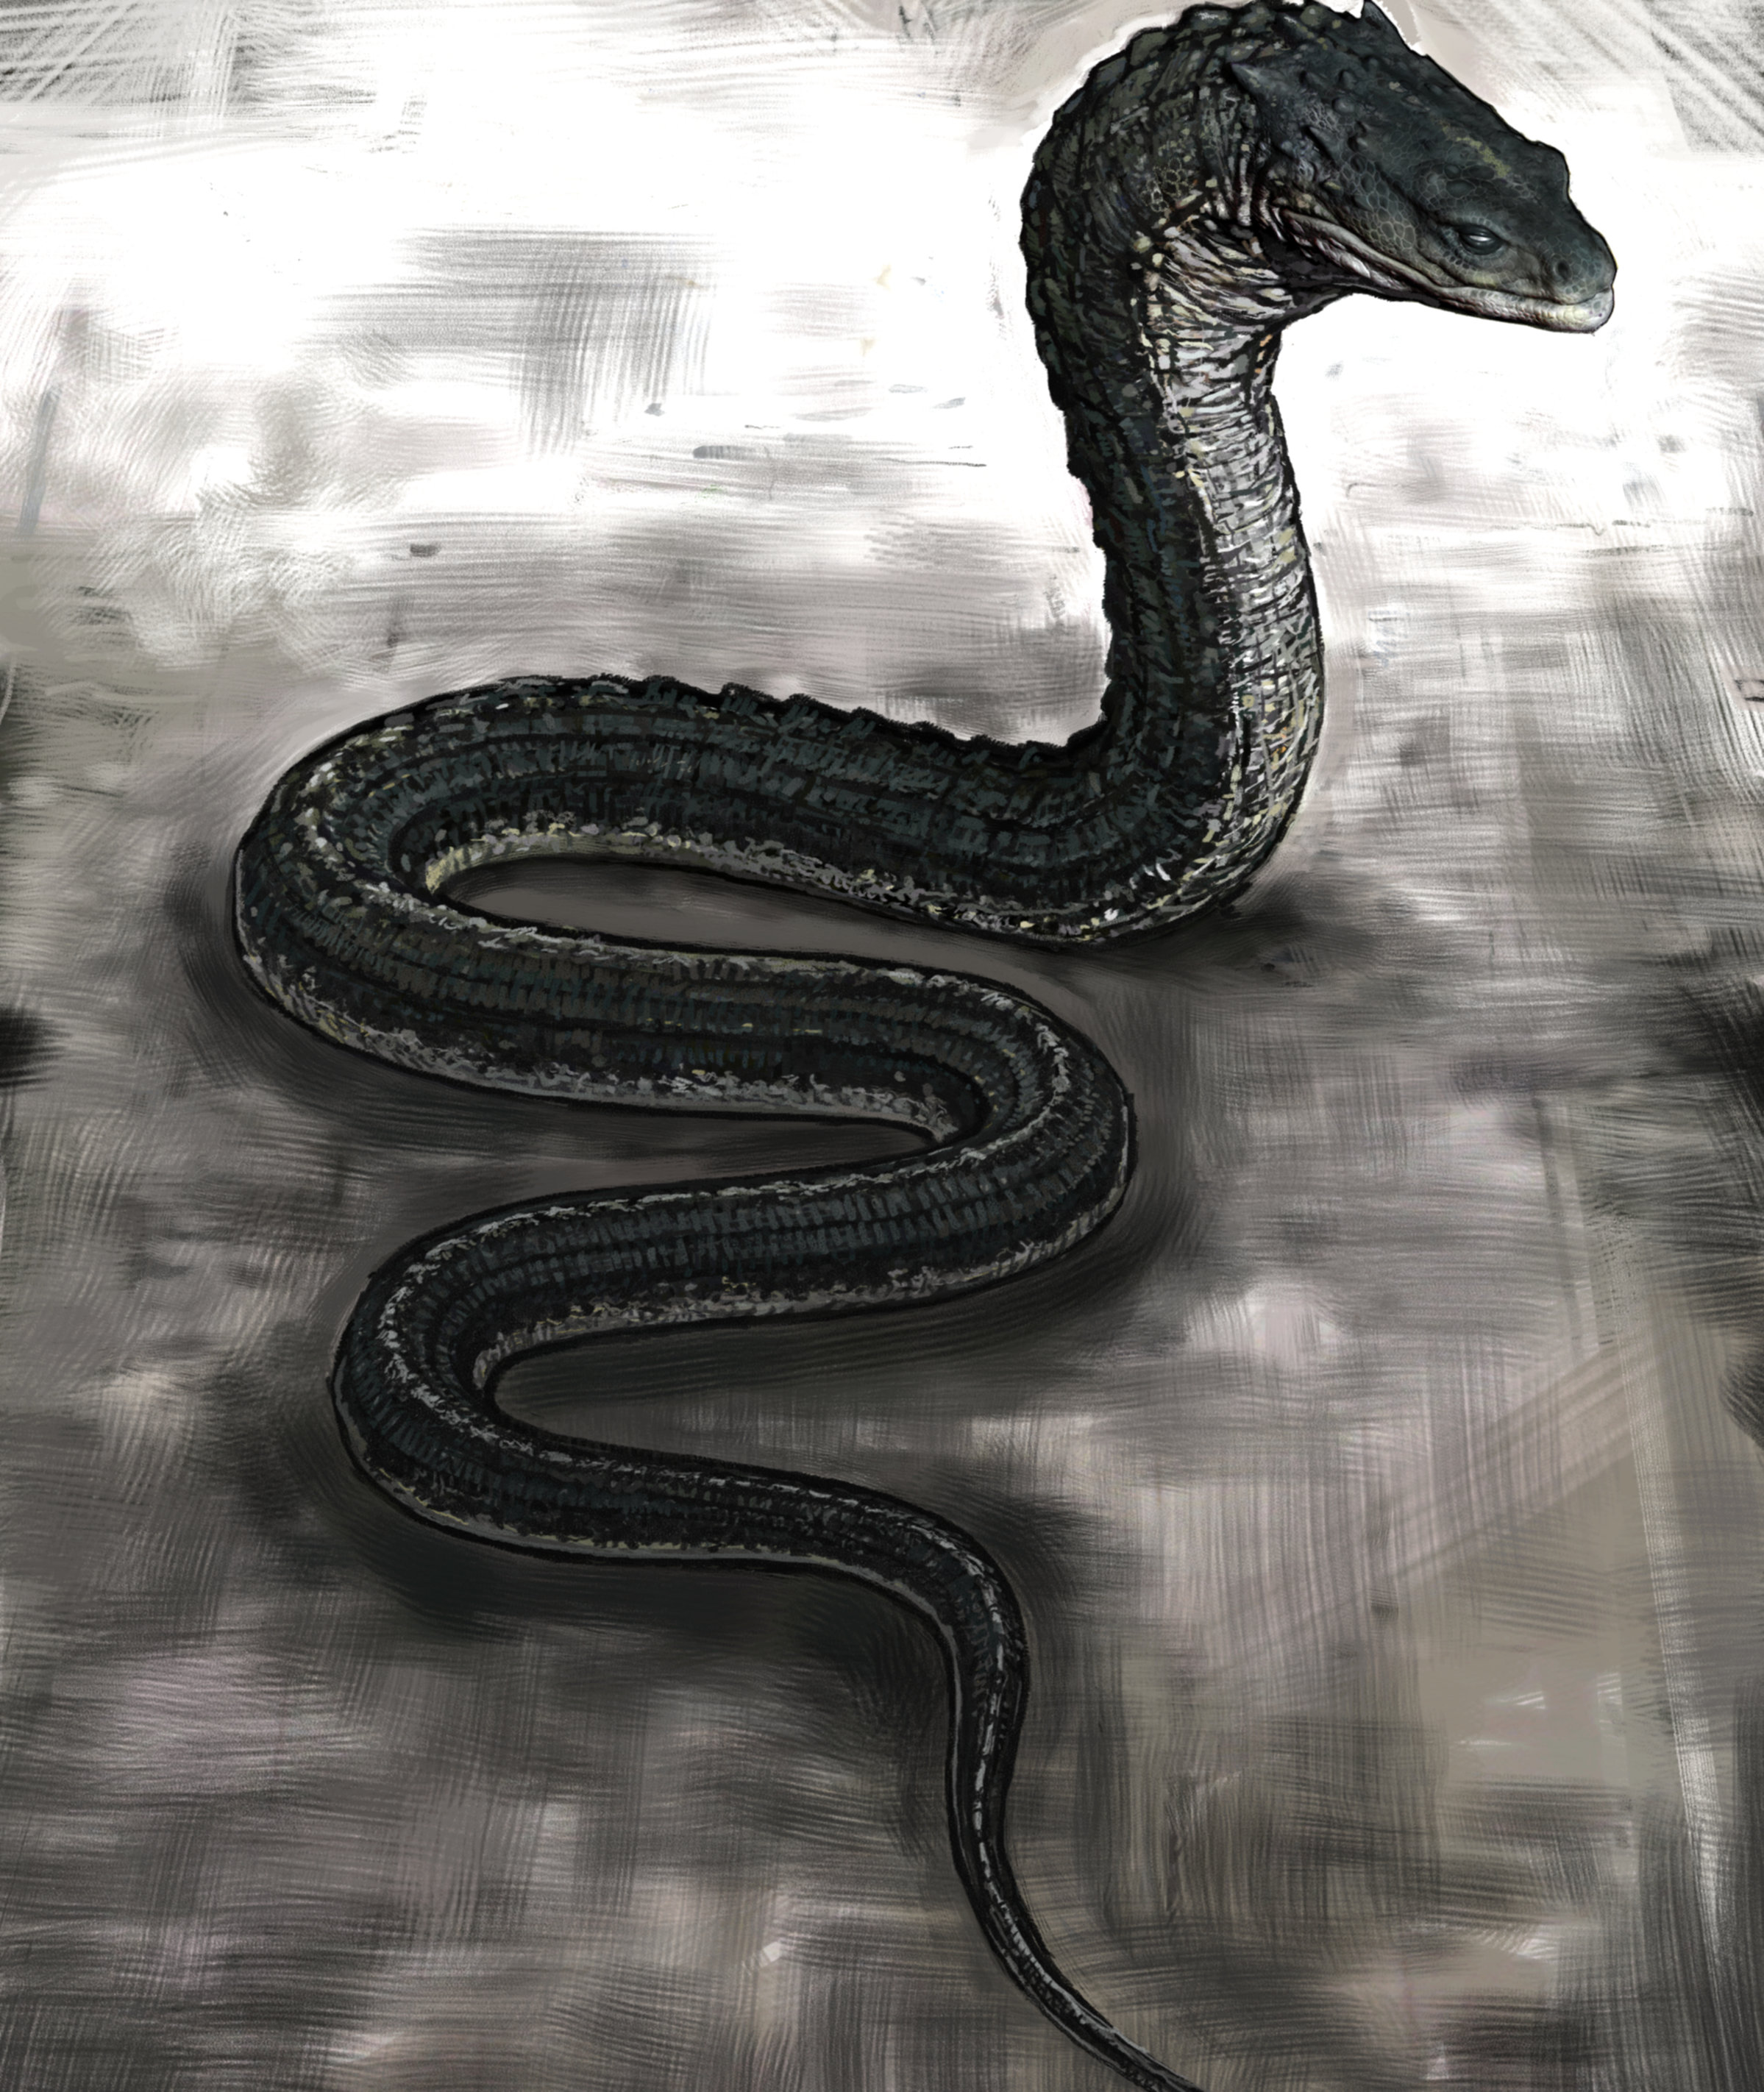 A drawing of the giant snake creature called the Basilisk.